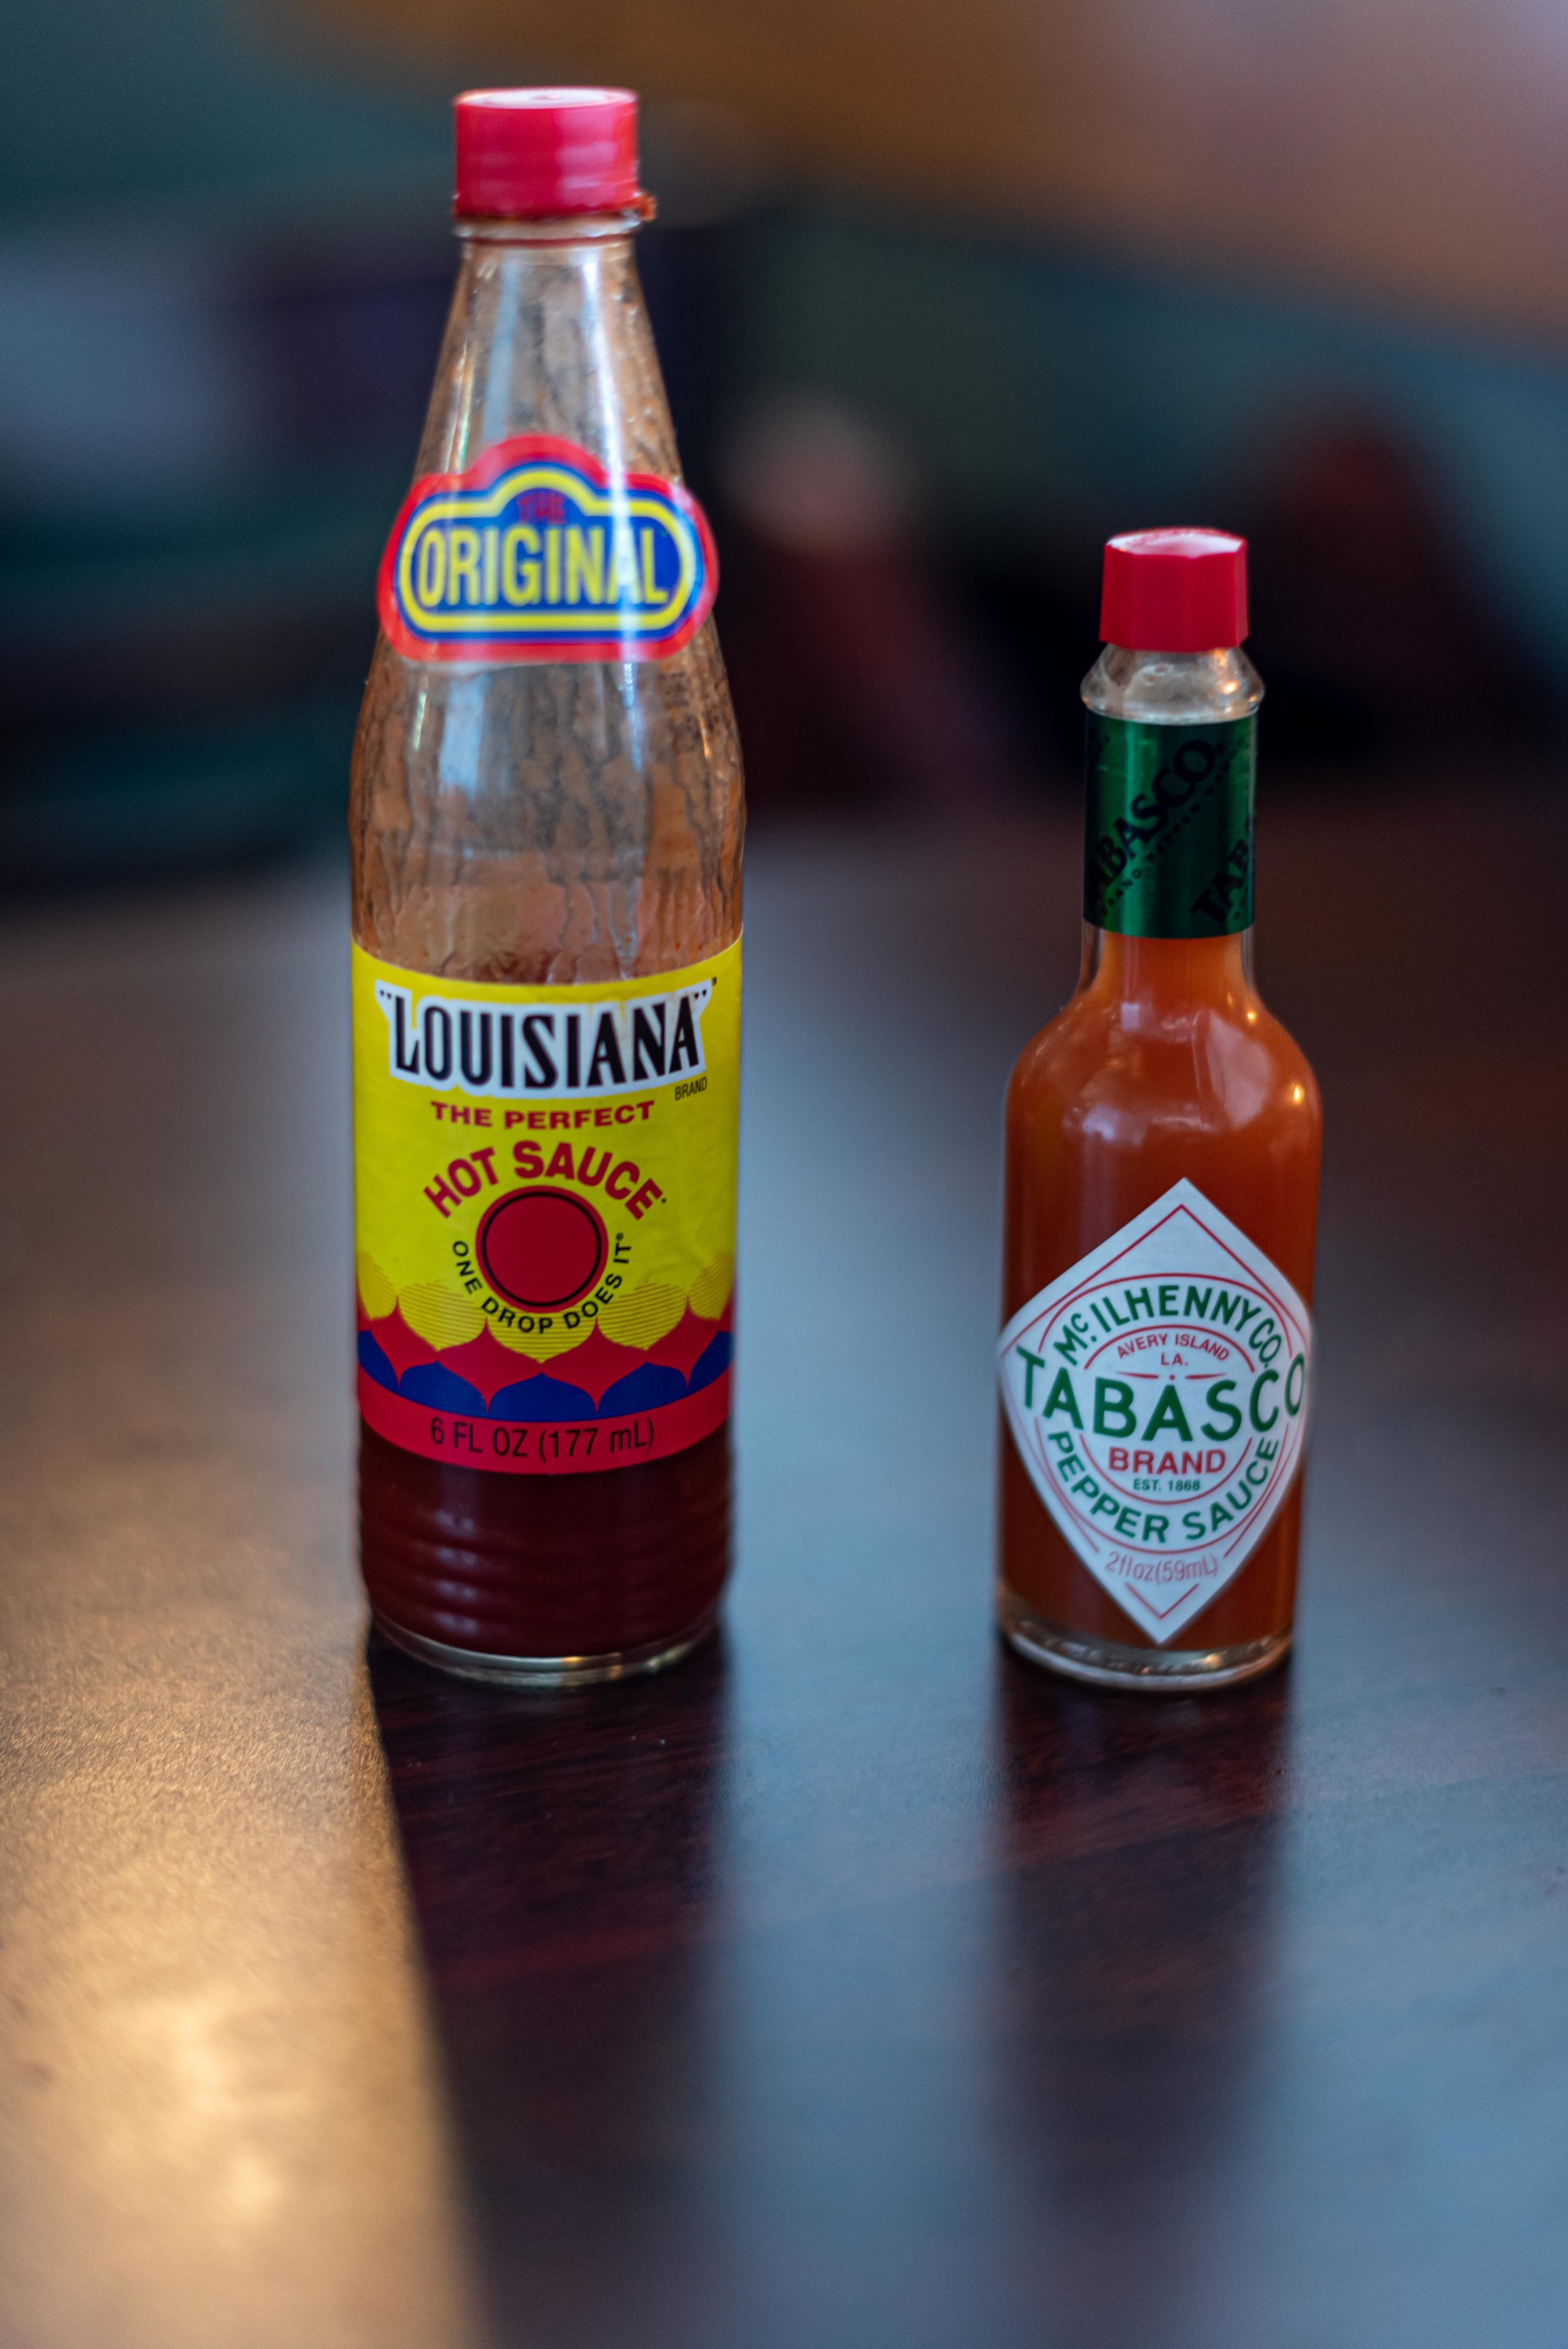 No matter what anyone says, Louisiana hot sauce is better than tabasco.